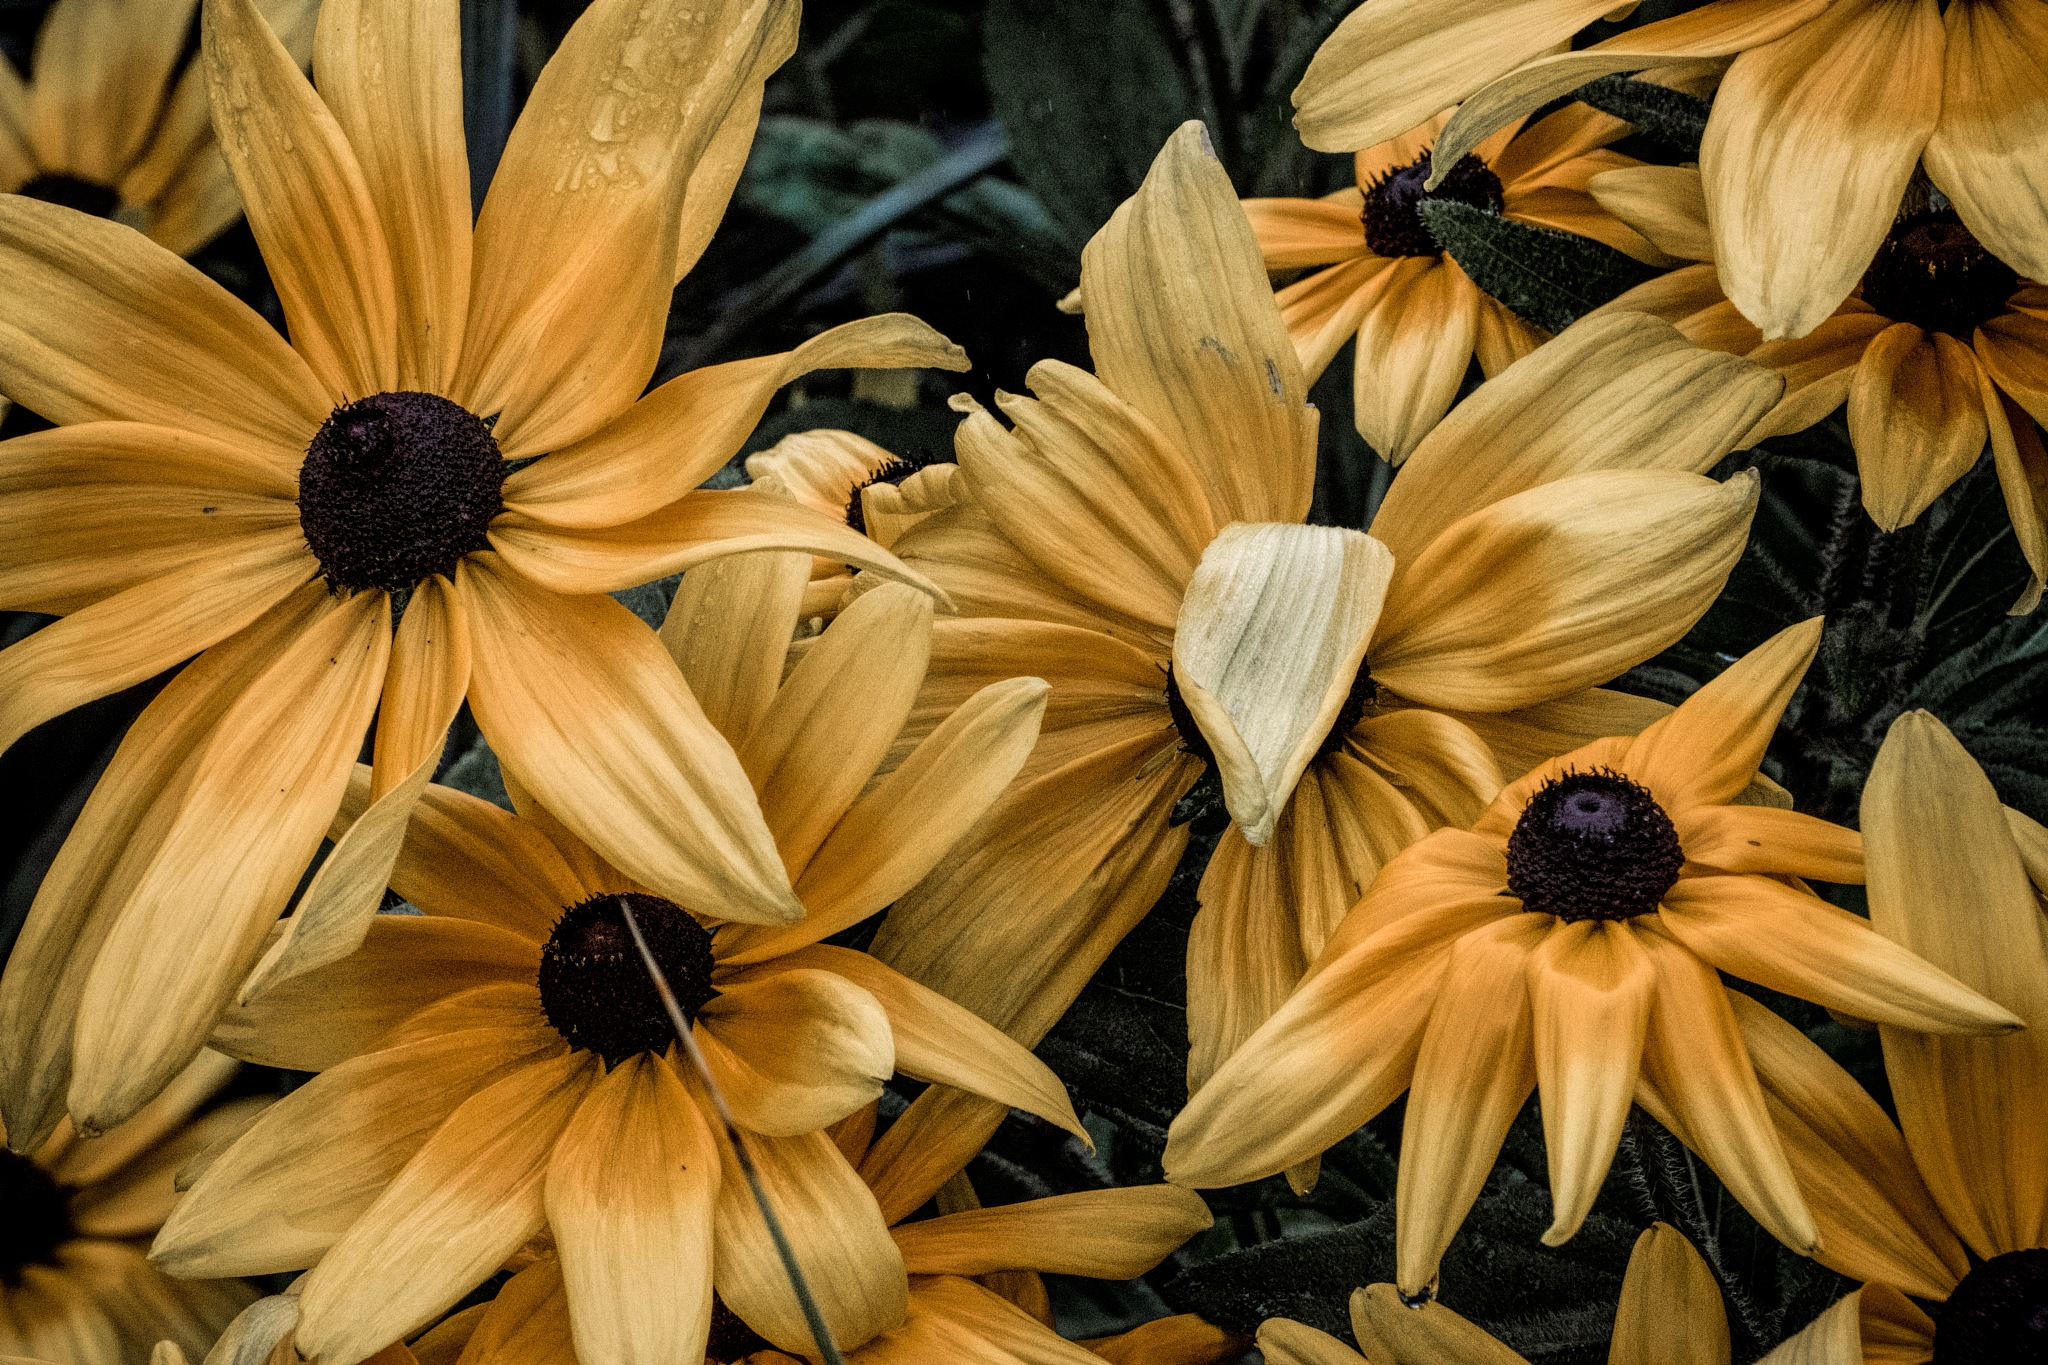 Flower 9-2-31 by JohnEllingson